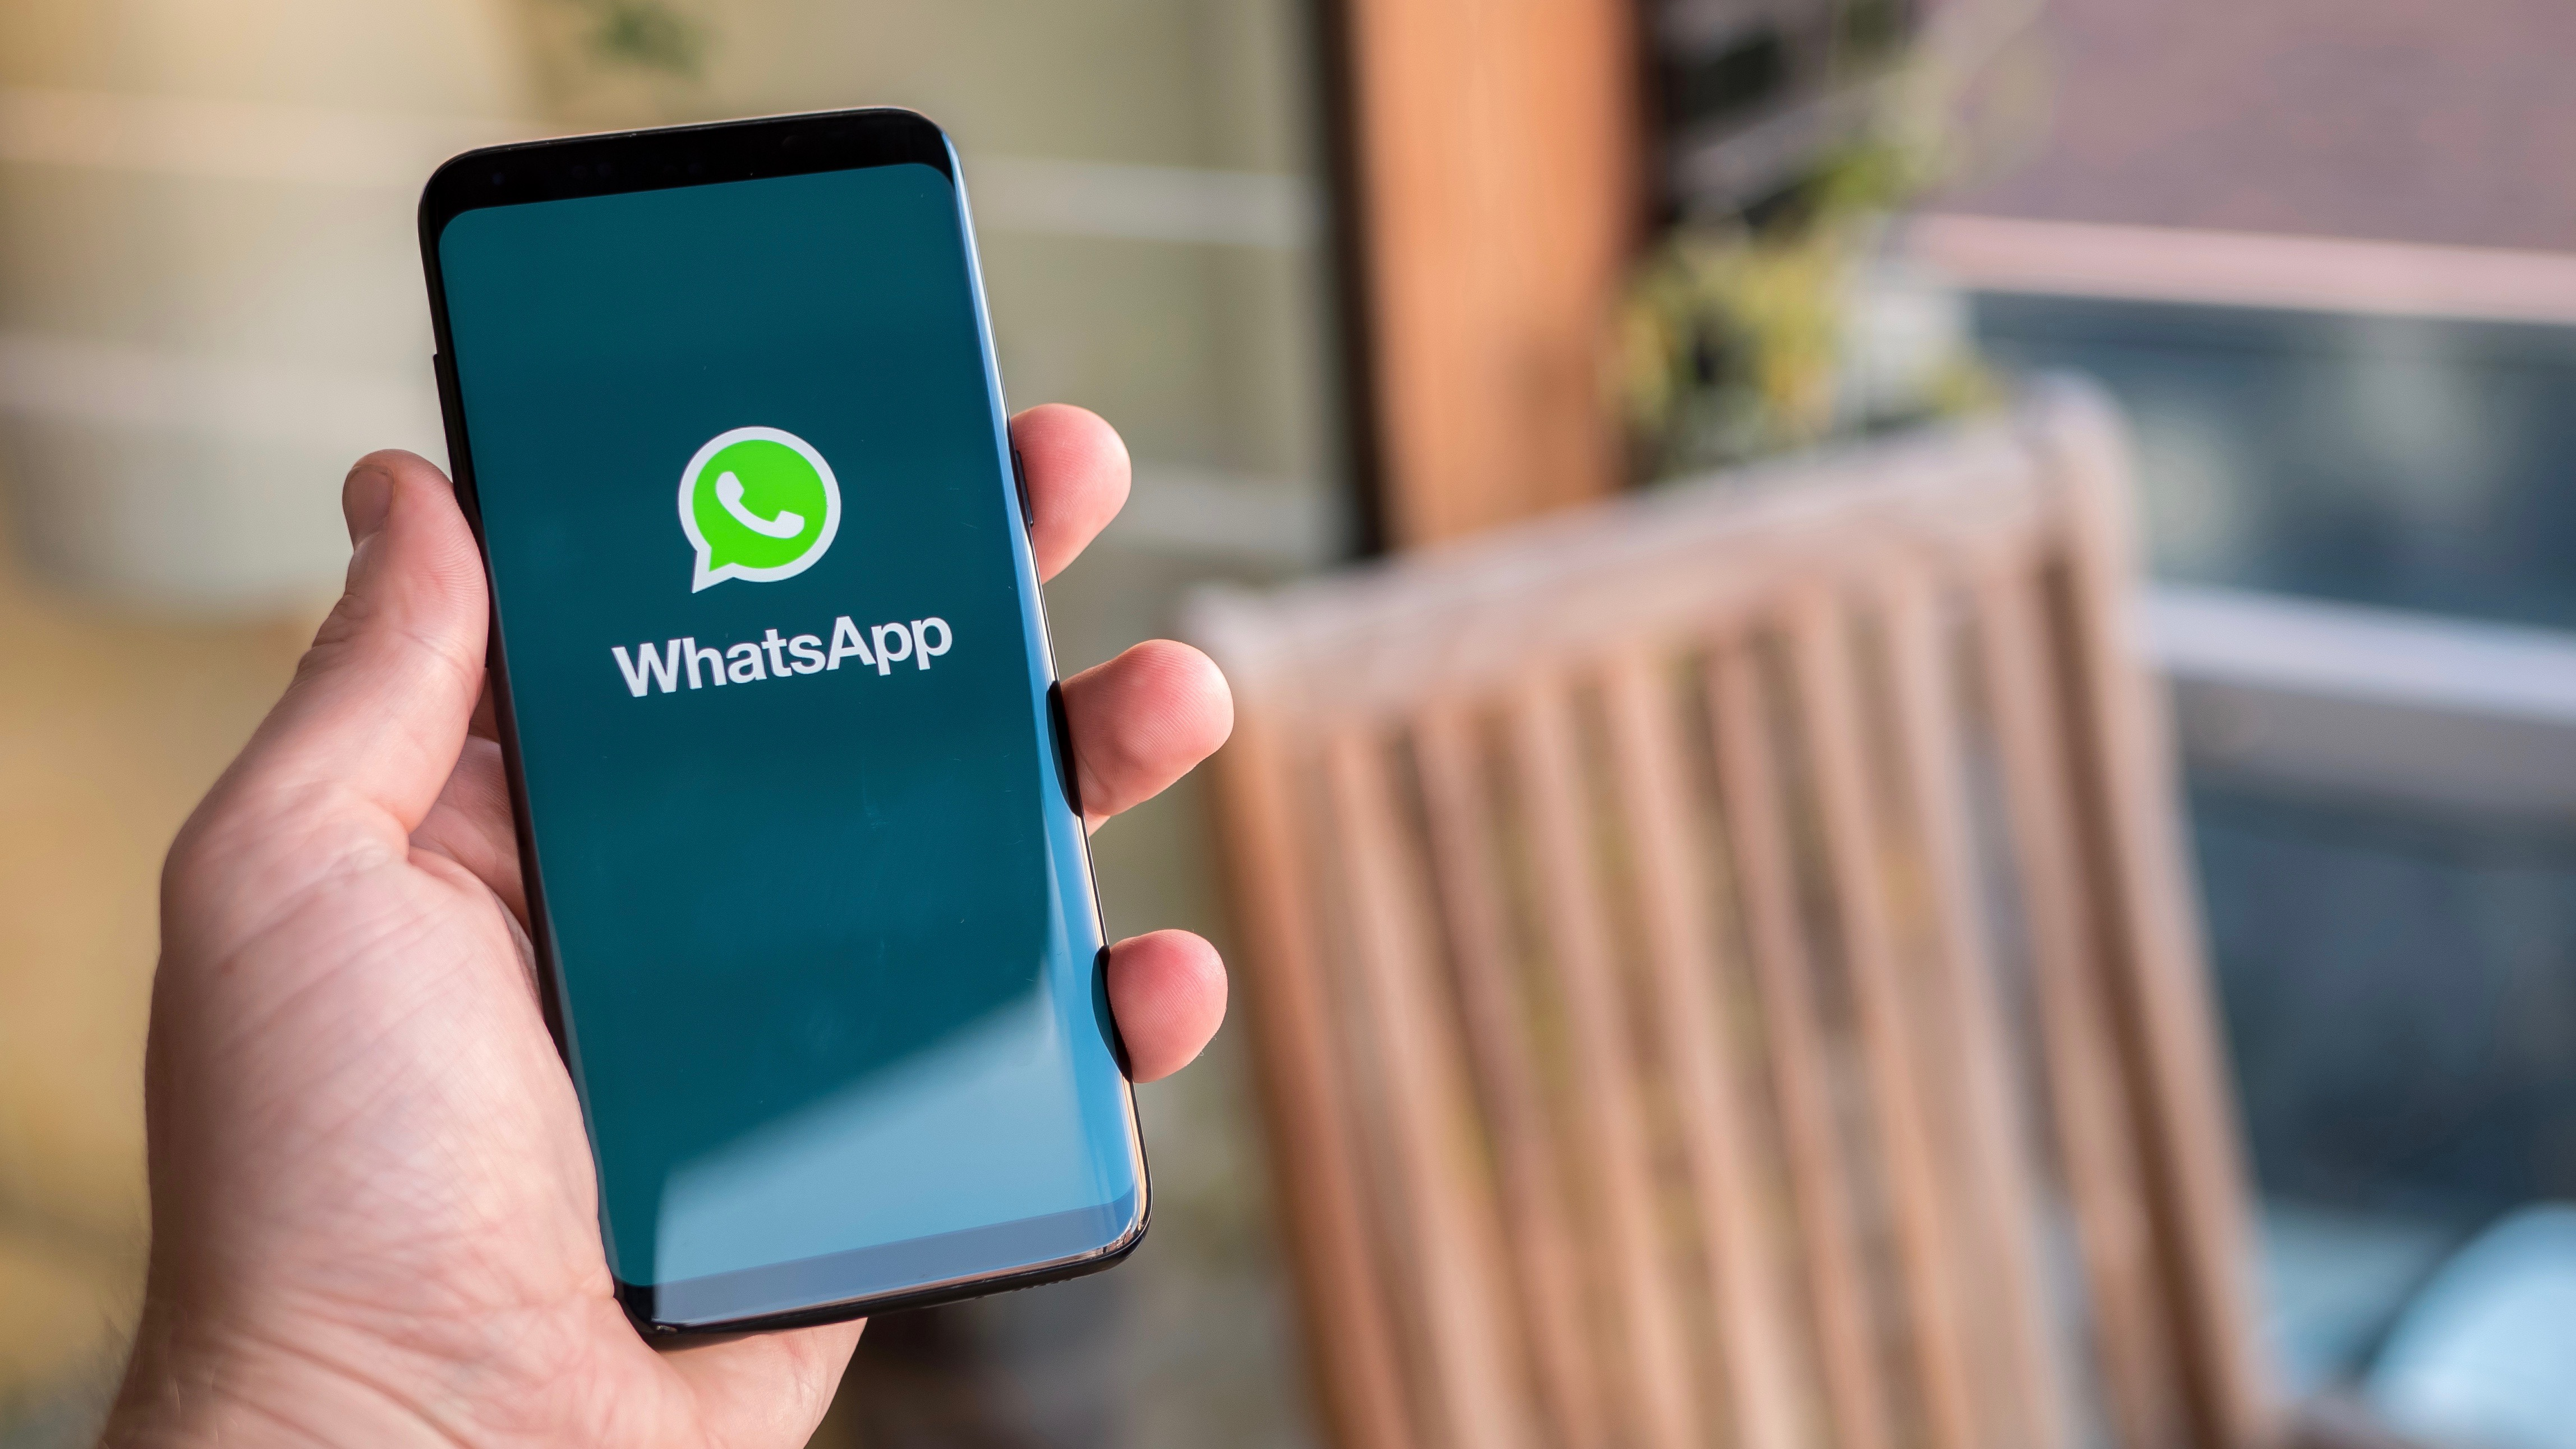 WhatsApp says it won't hand over user data to Hong Kong authorities |  TechRadar